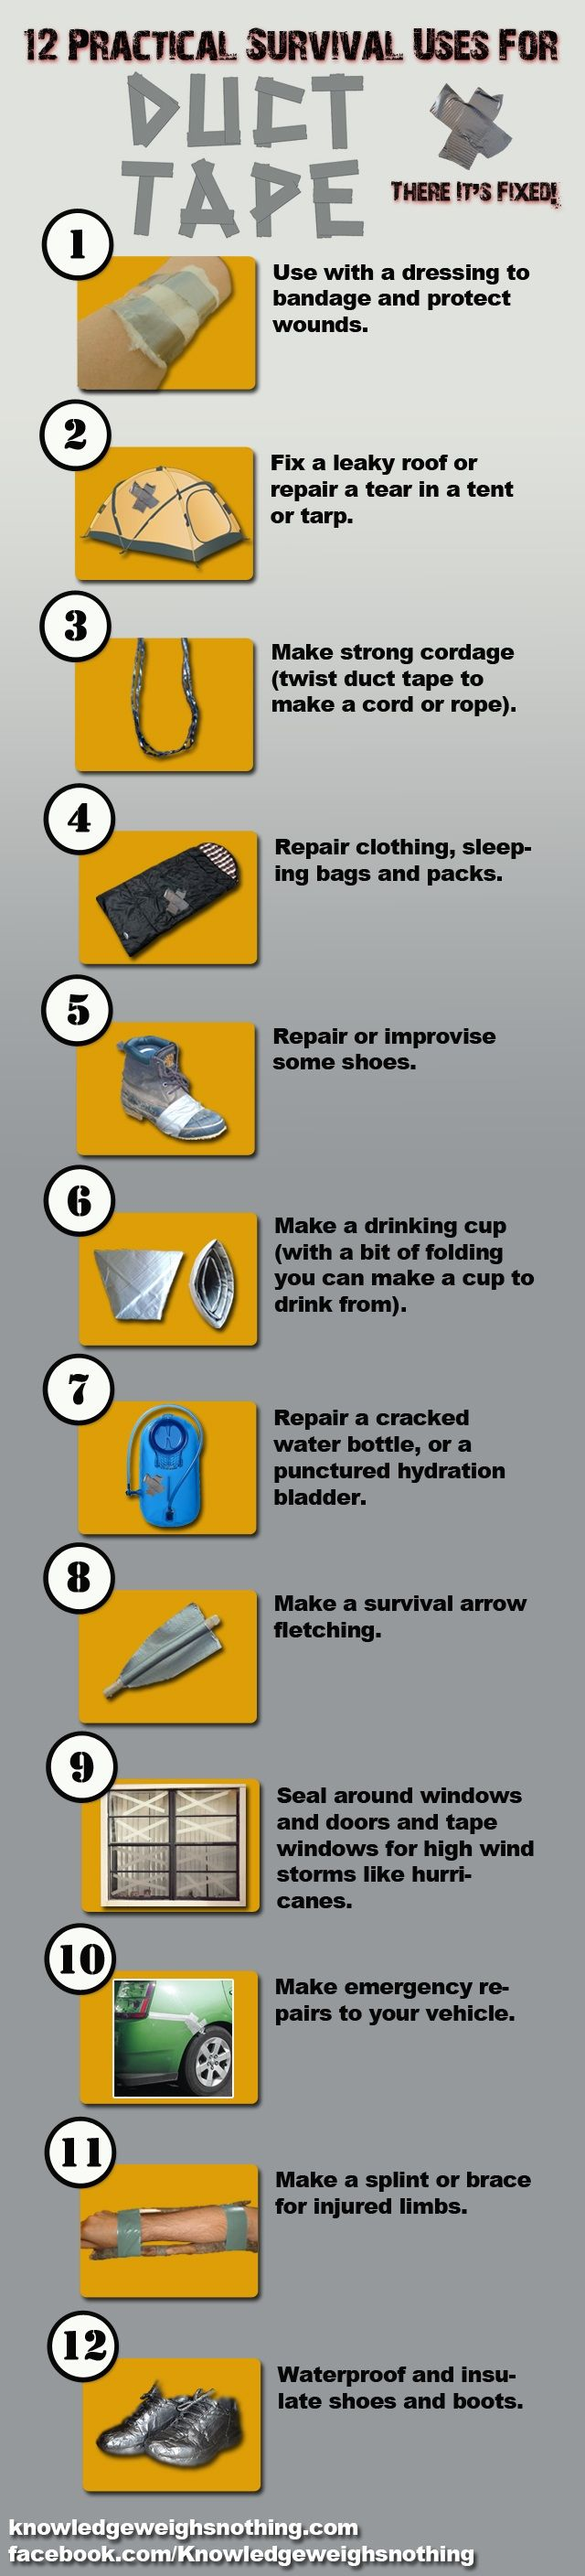 12 practical survival uses for duct tape